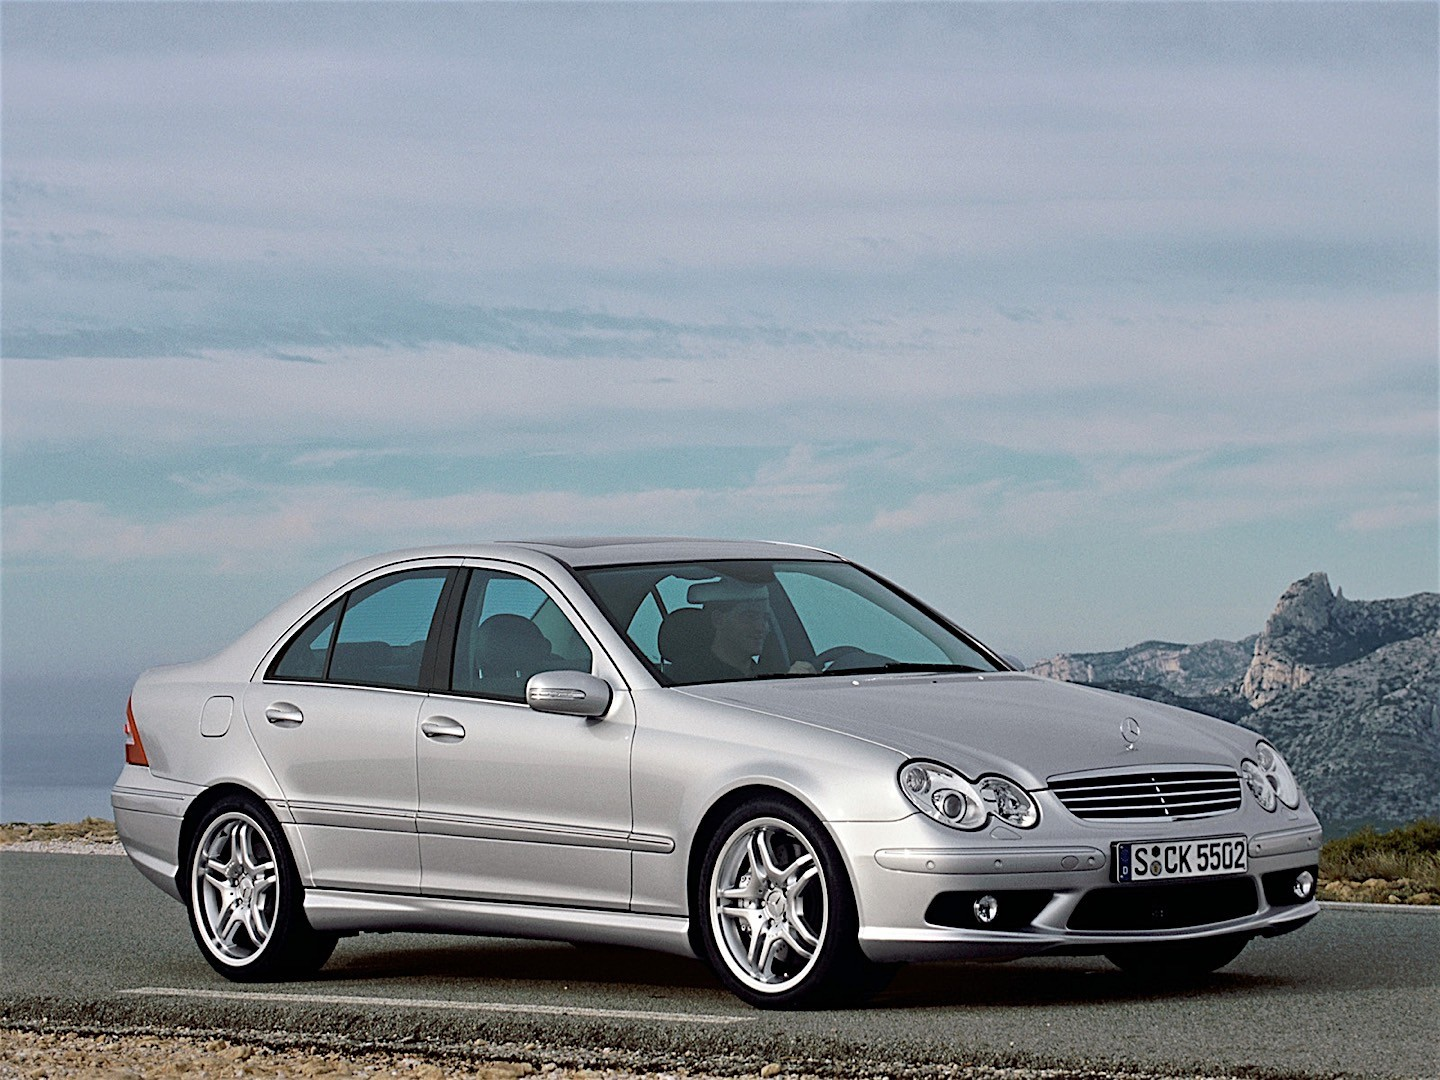 Mercedes benz c 55 amg w203 2004 2005 2006 2007 for Mercedes benz car picture gallery